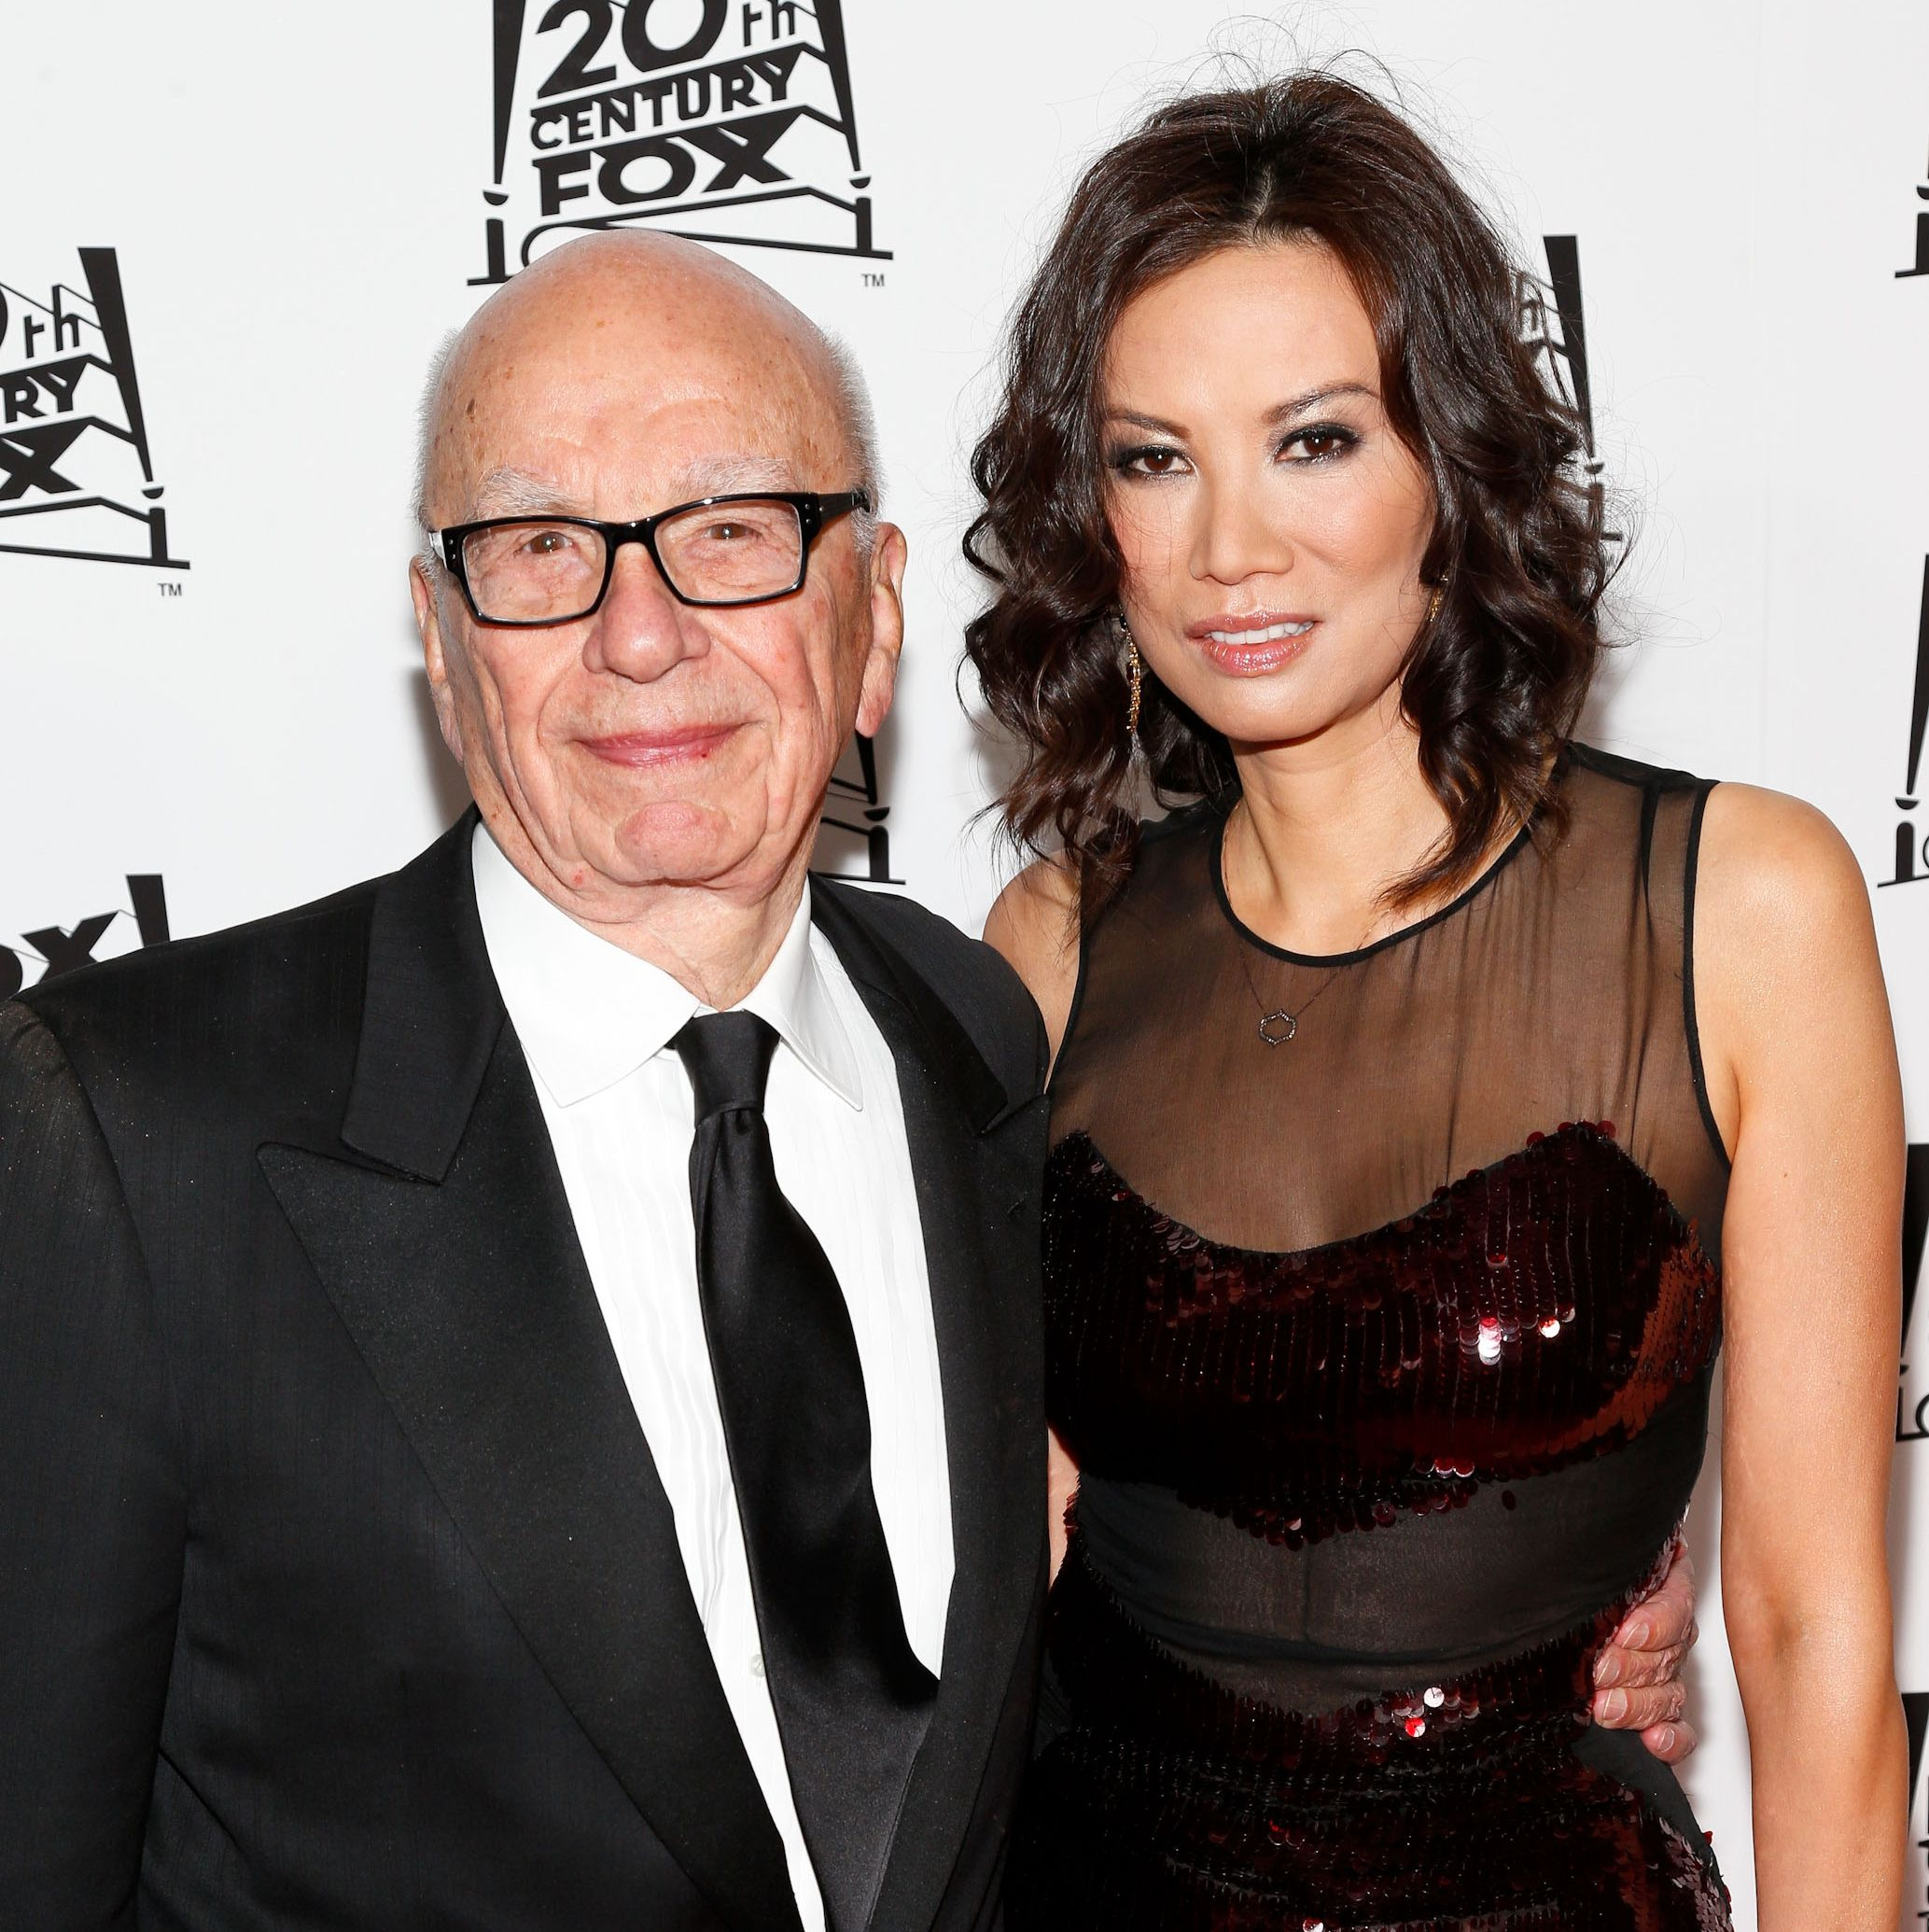 Rupert Murdoch and Wendi Deng in 2013.